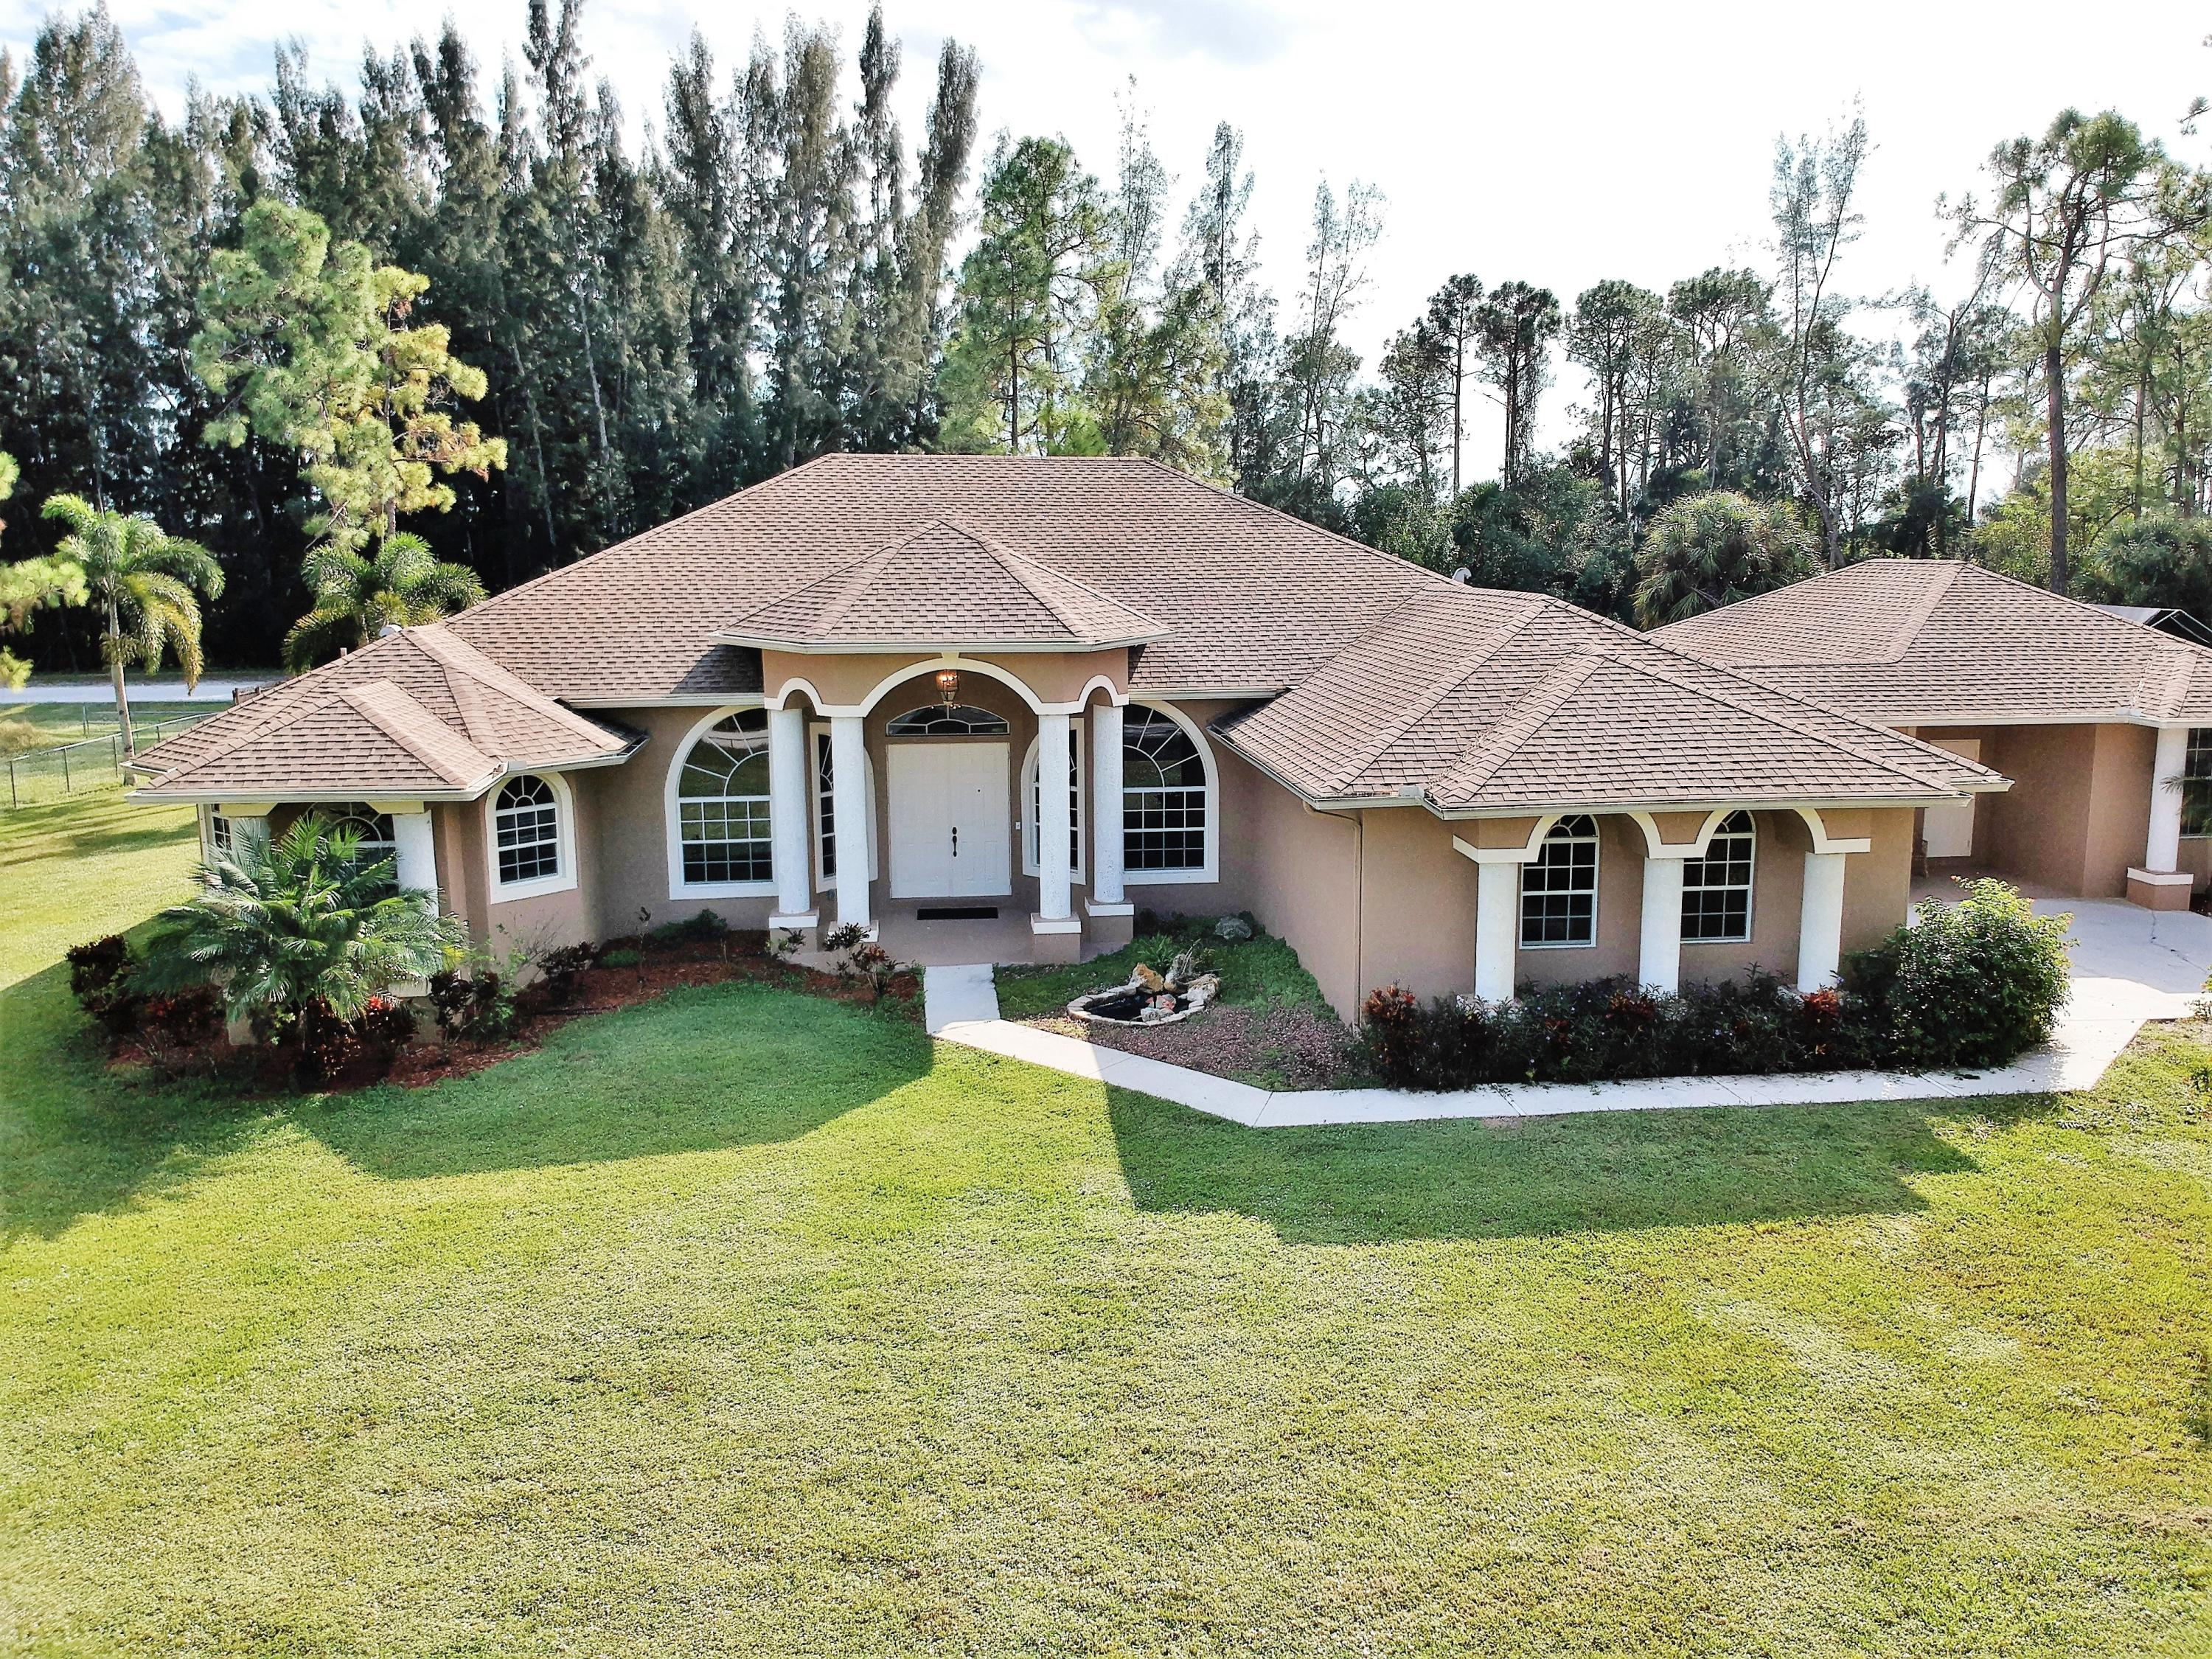 15744 60th Place, Loxahatchee, Florida 33470, 6 Bedrooms Bedrooms, ,4 BathroomsBathrooms,Single Family,For Sale,60th,RX-10483005